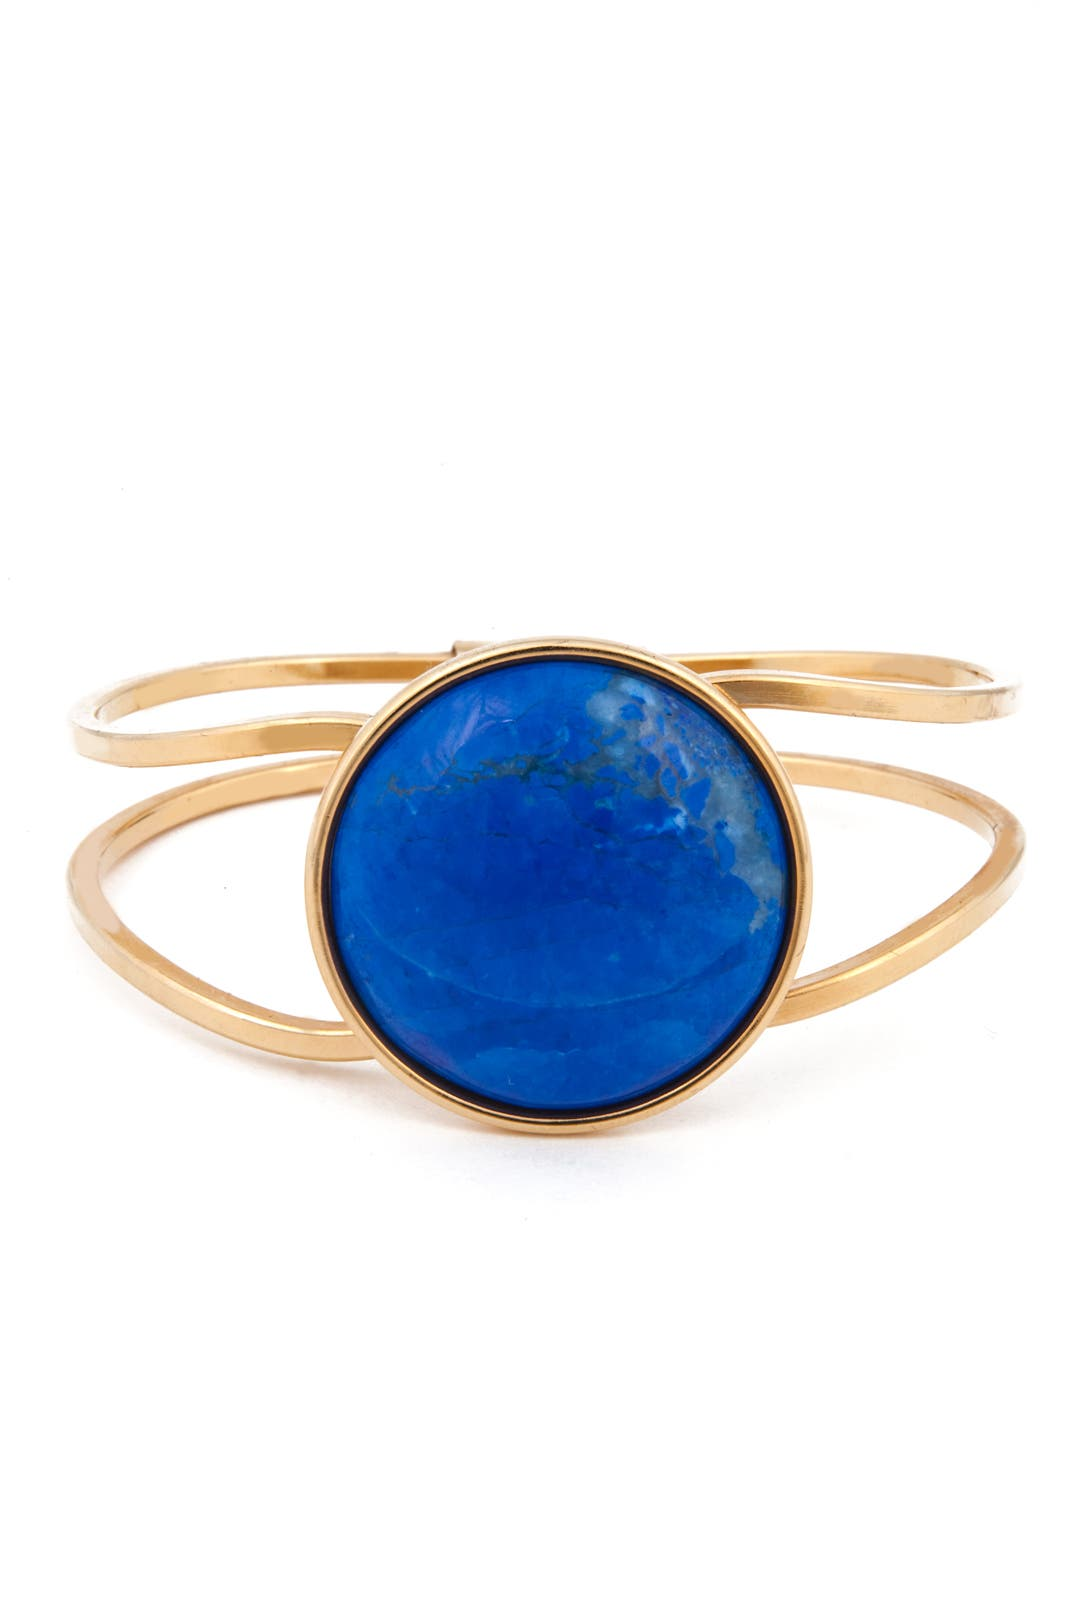 Blue and Bold Bangle by AV Max